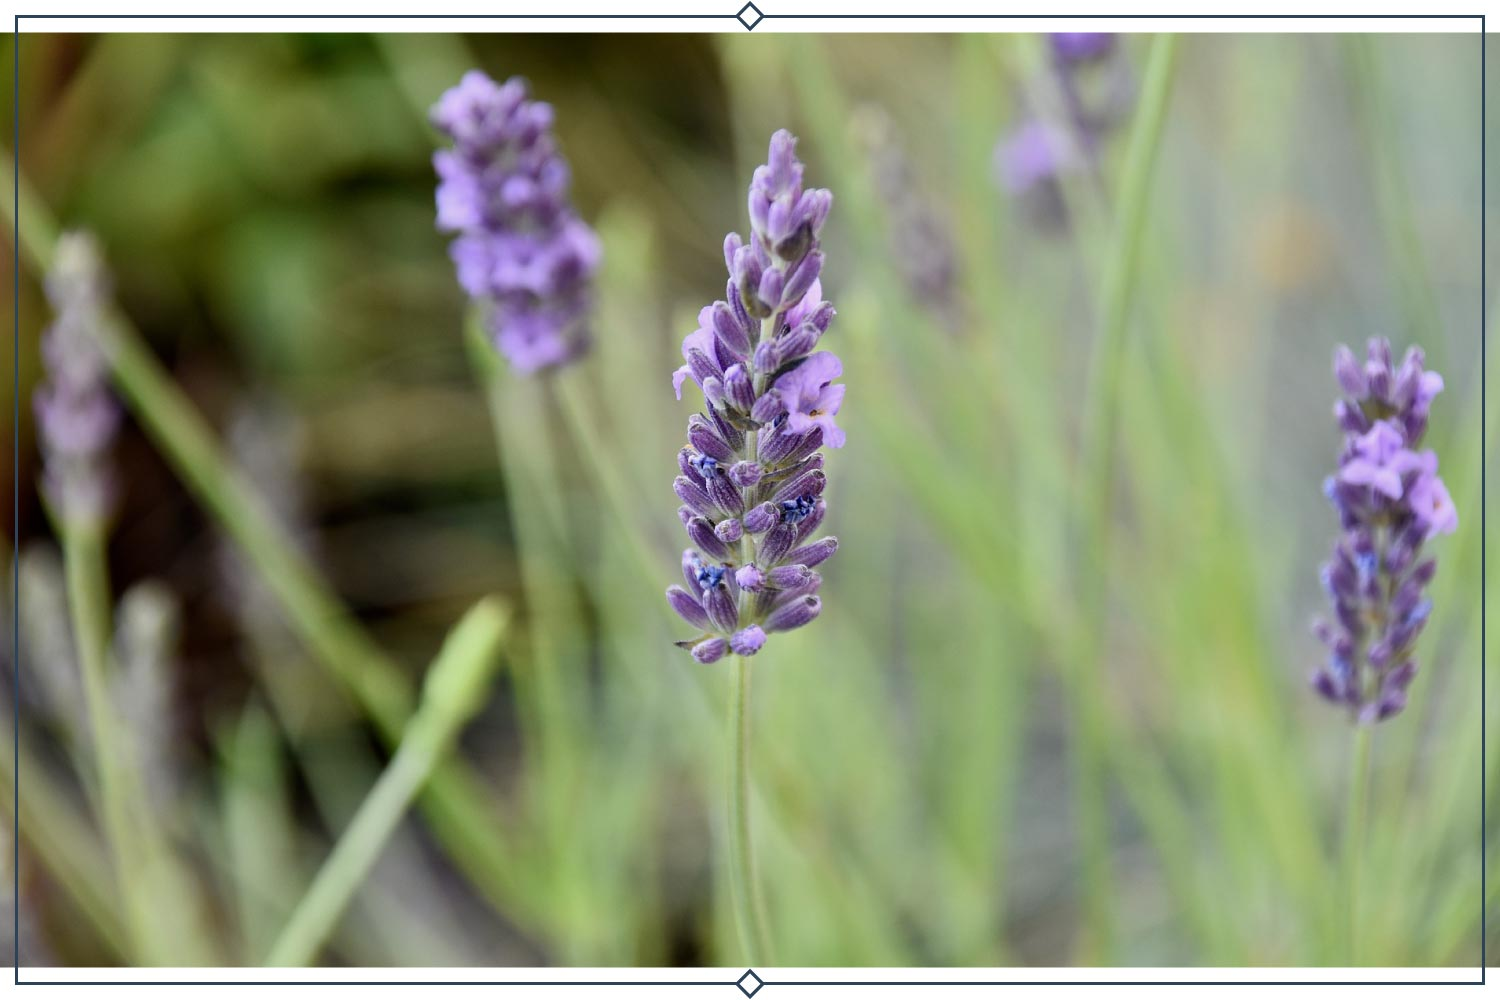 grosso lavender type